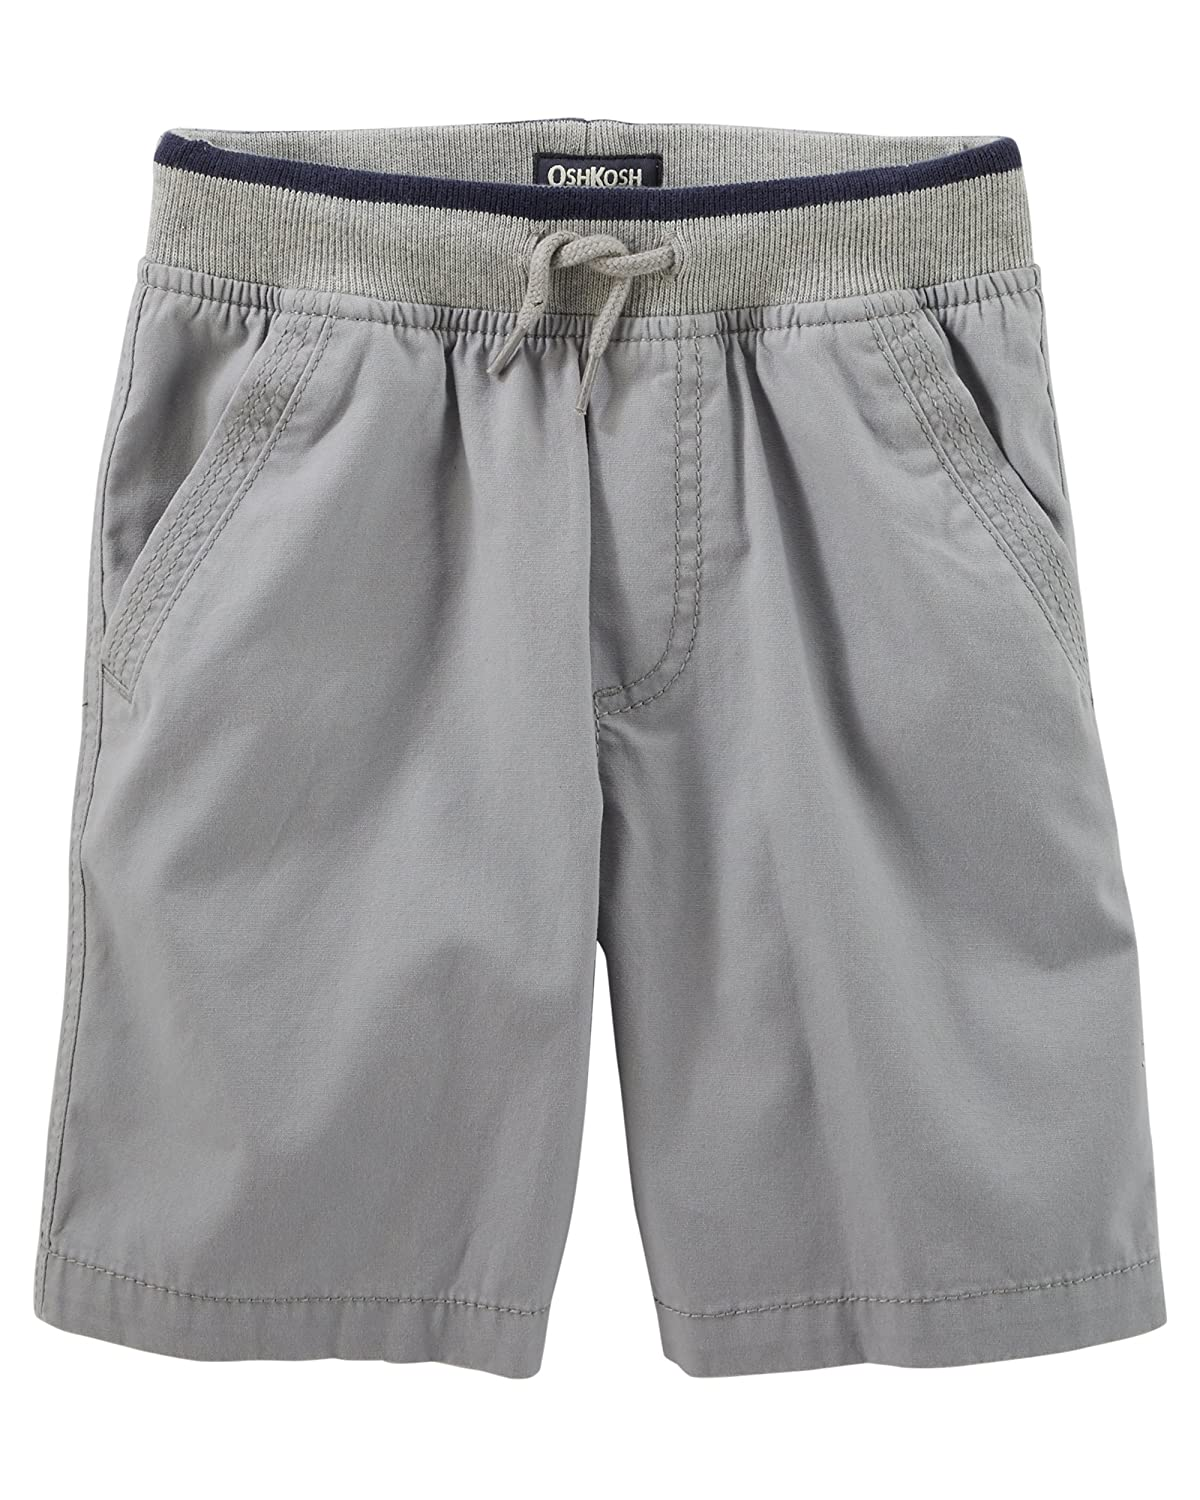 OshKosh B'Gosh Boys' Pull On Short Osh Kosh